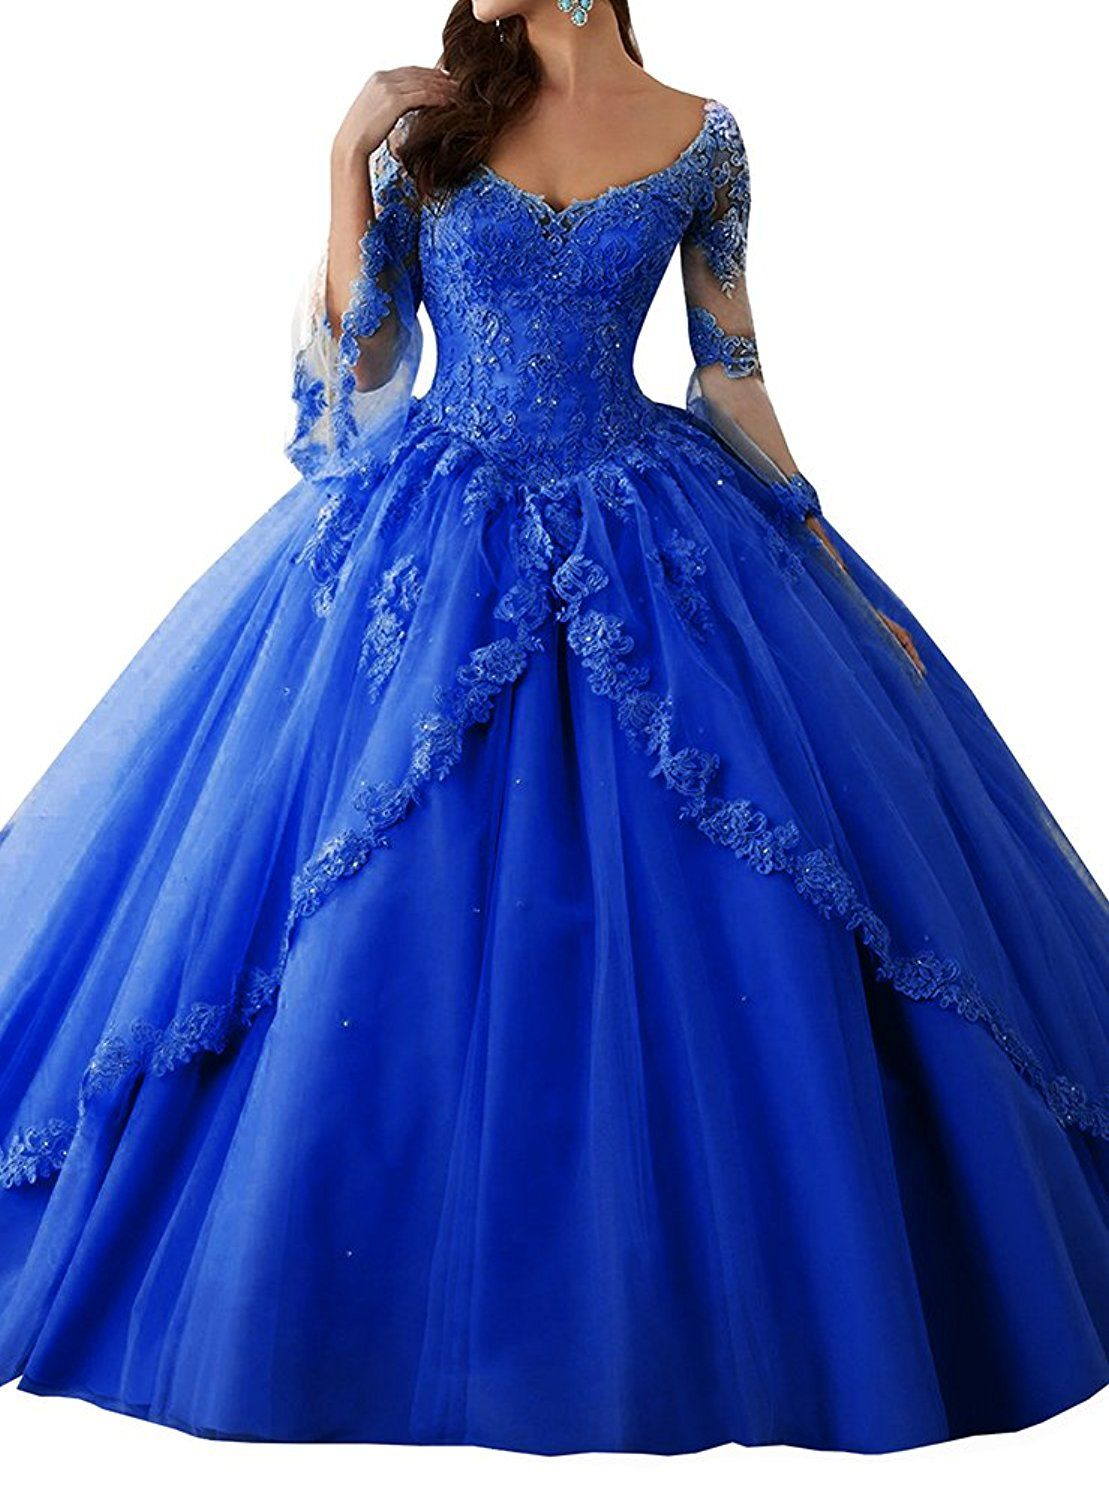 ff30990e2d2 Annadress Women s Long Sleeve Lace Quinceanera Dresses Train V-Neck Ball  Gown Royal Blue US2 at Amazon Women s Clothing store